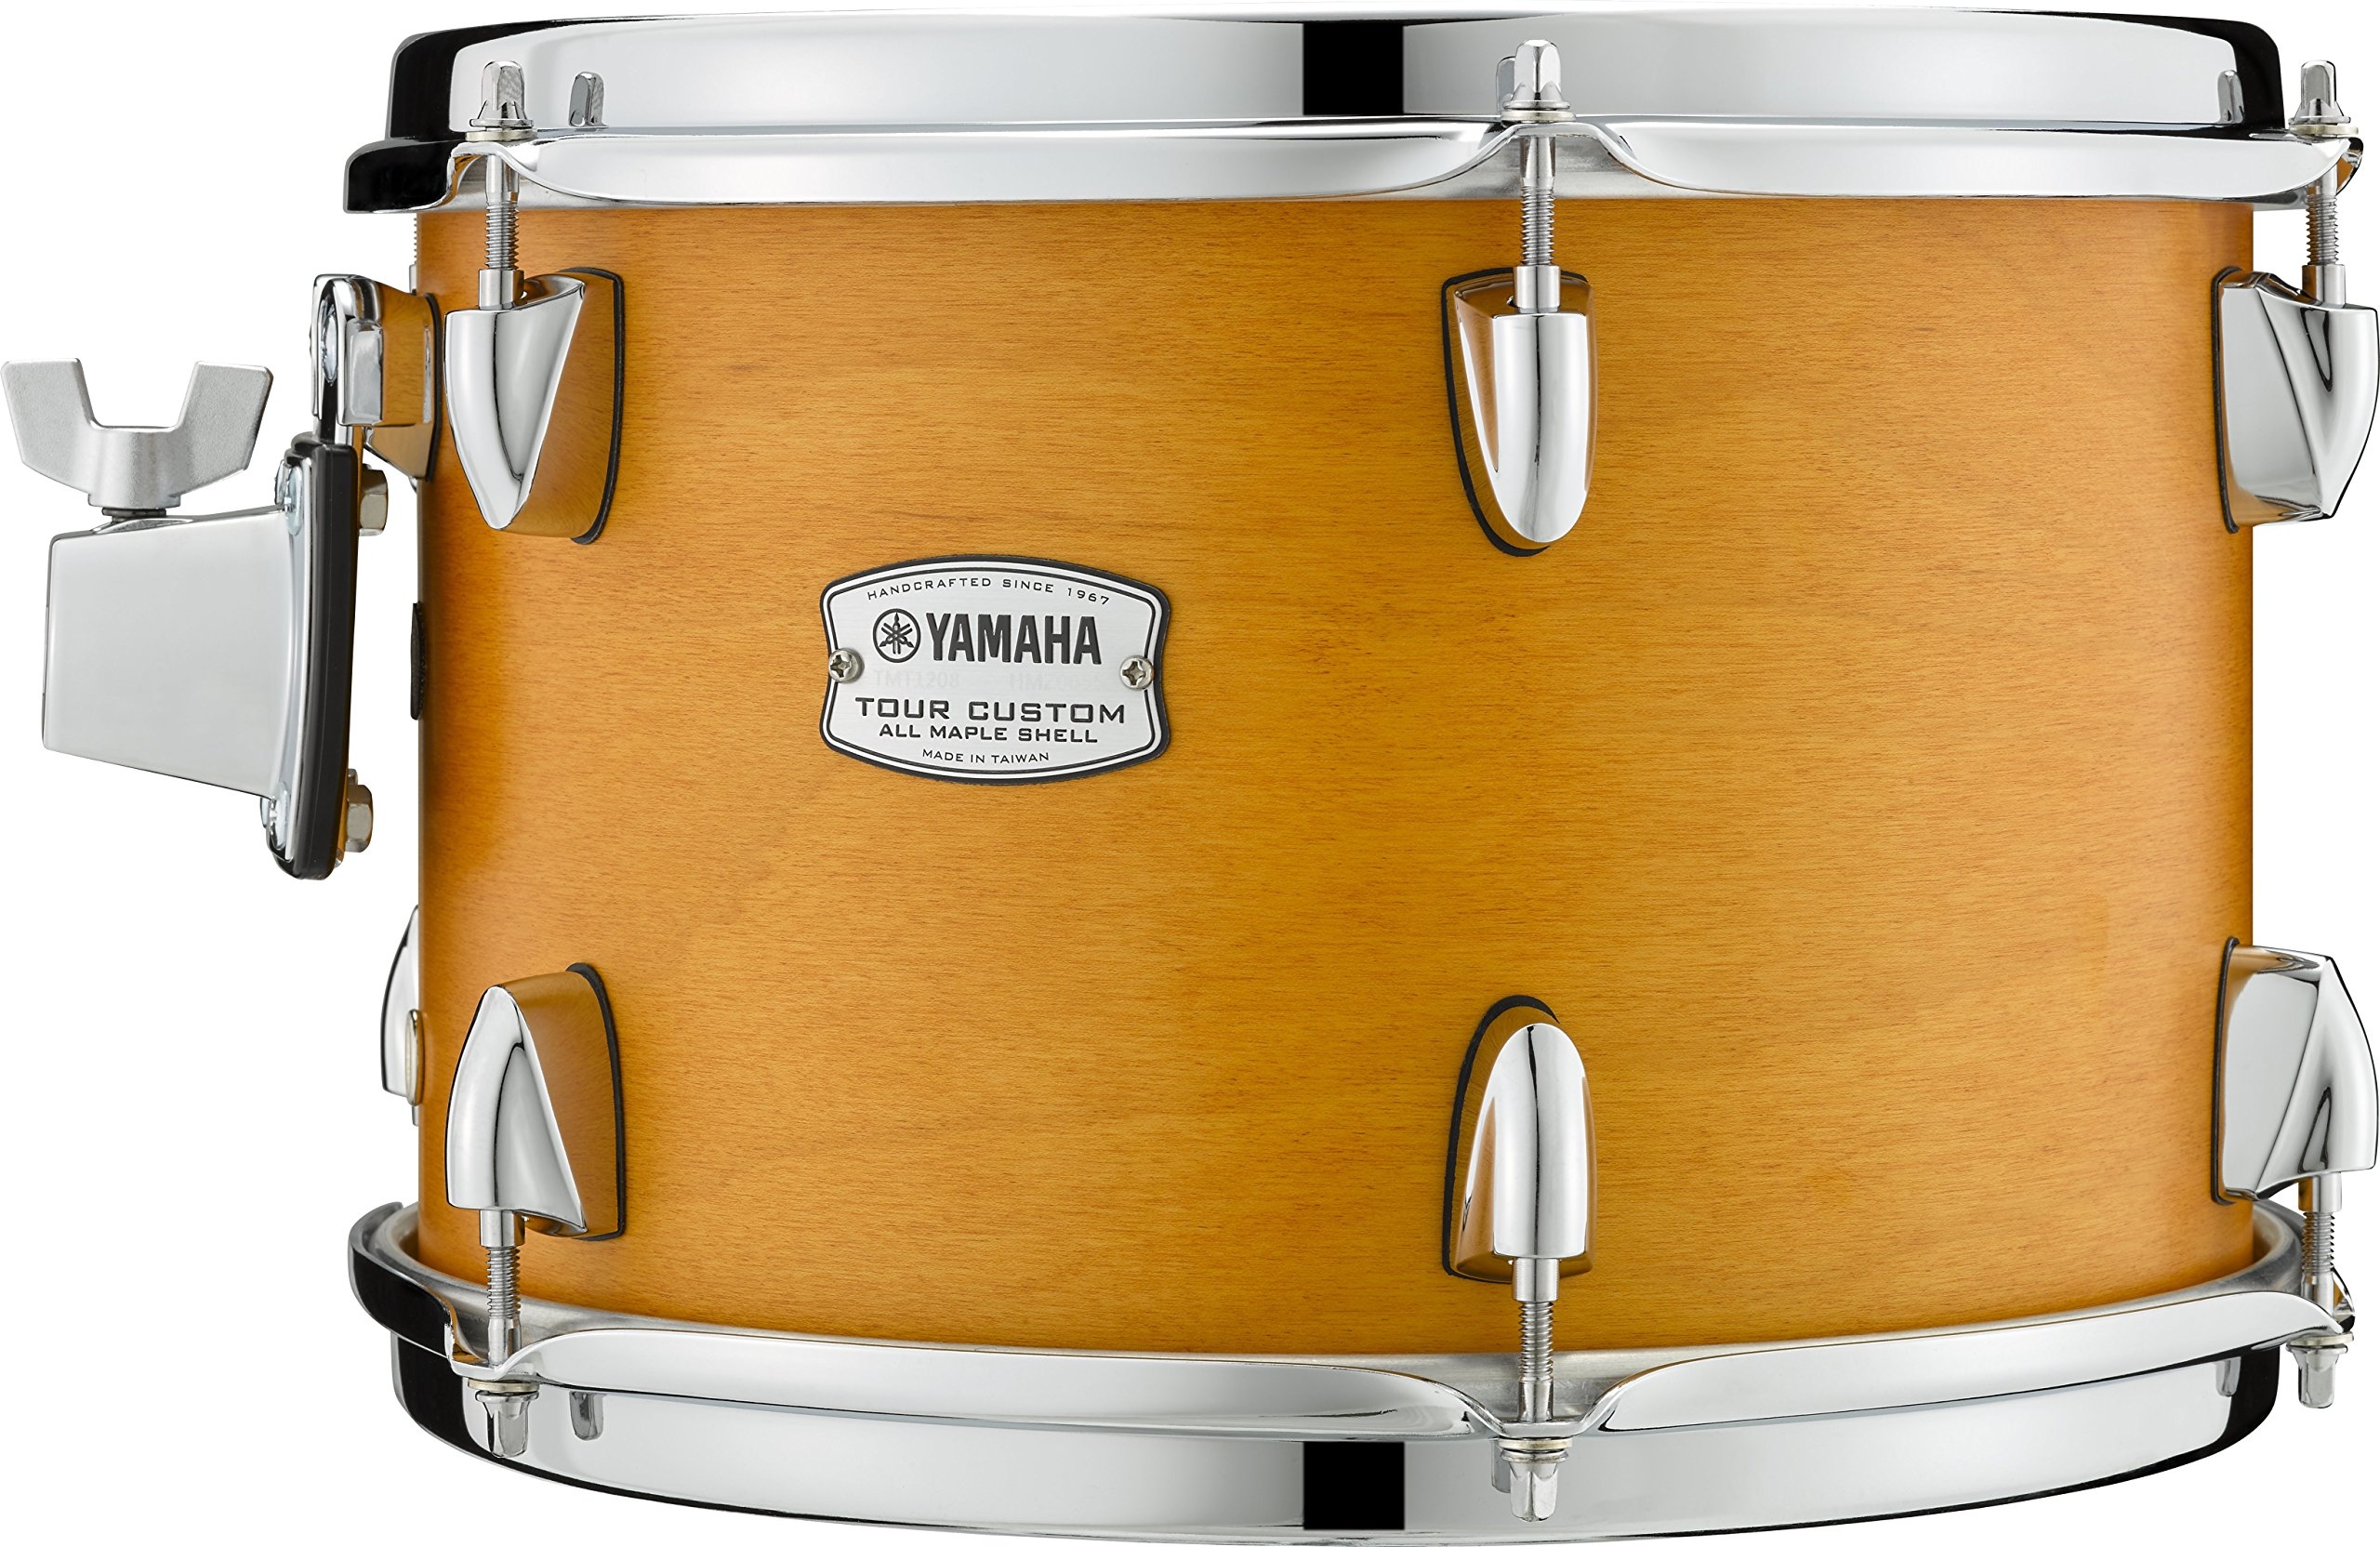 Yamaha Tour Custom Maple 13'' x 9'' Rack Tom, Caramel Satin